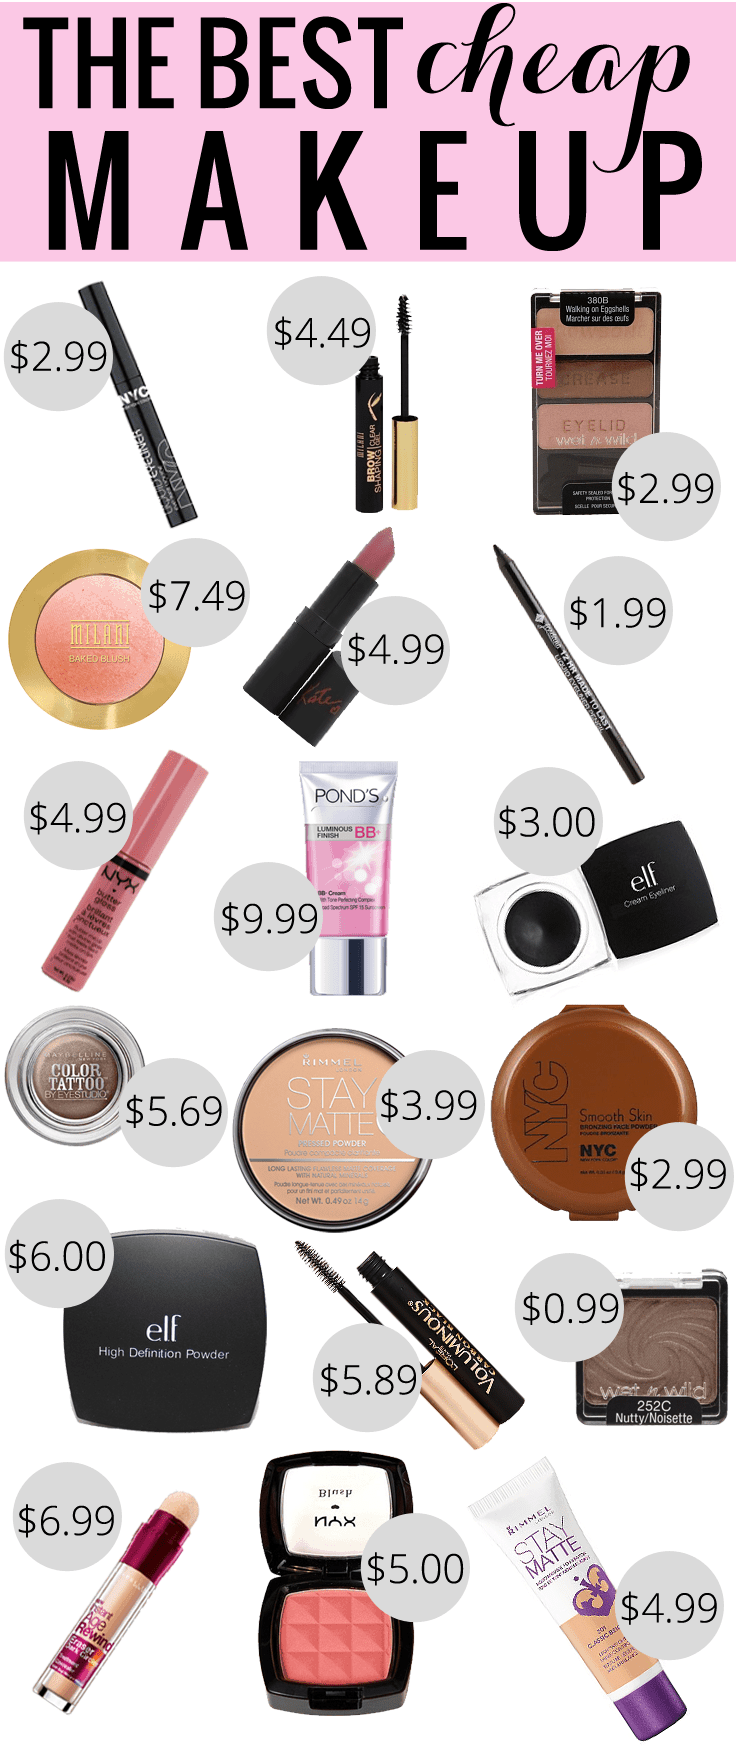 The best cheap makeup for What is the best online store